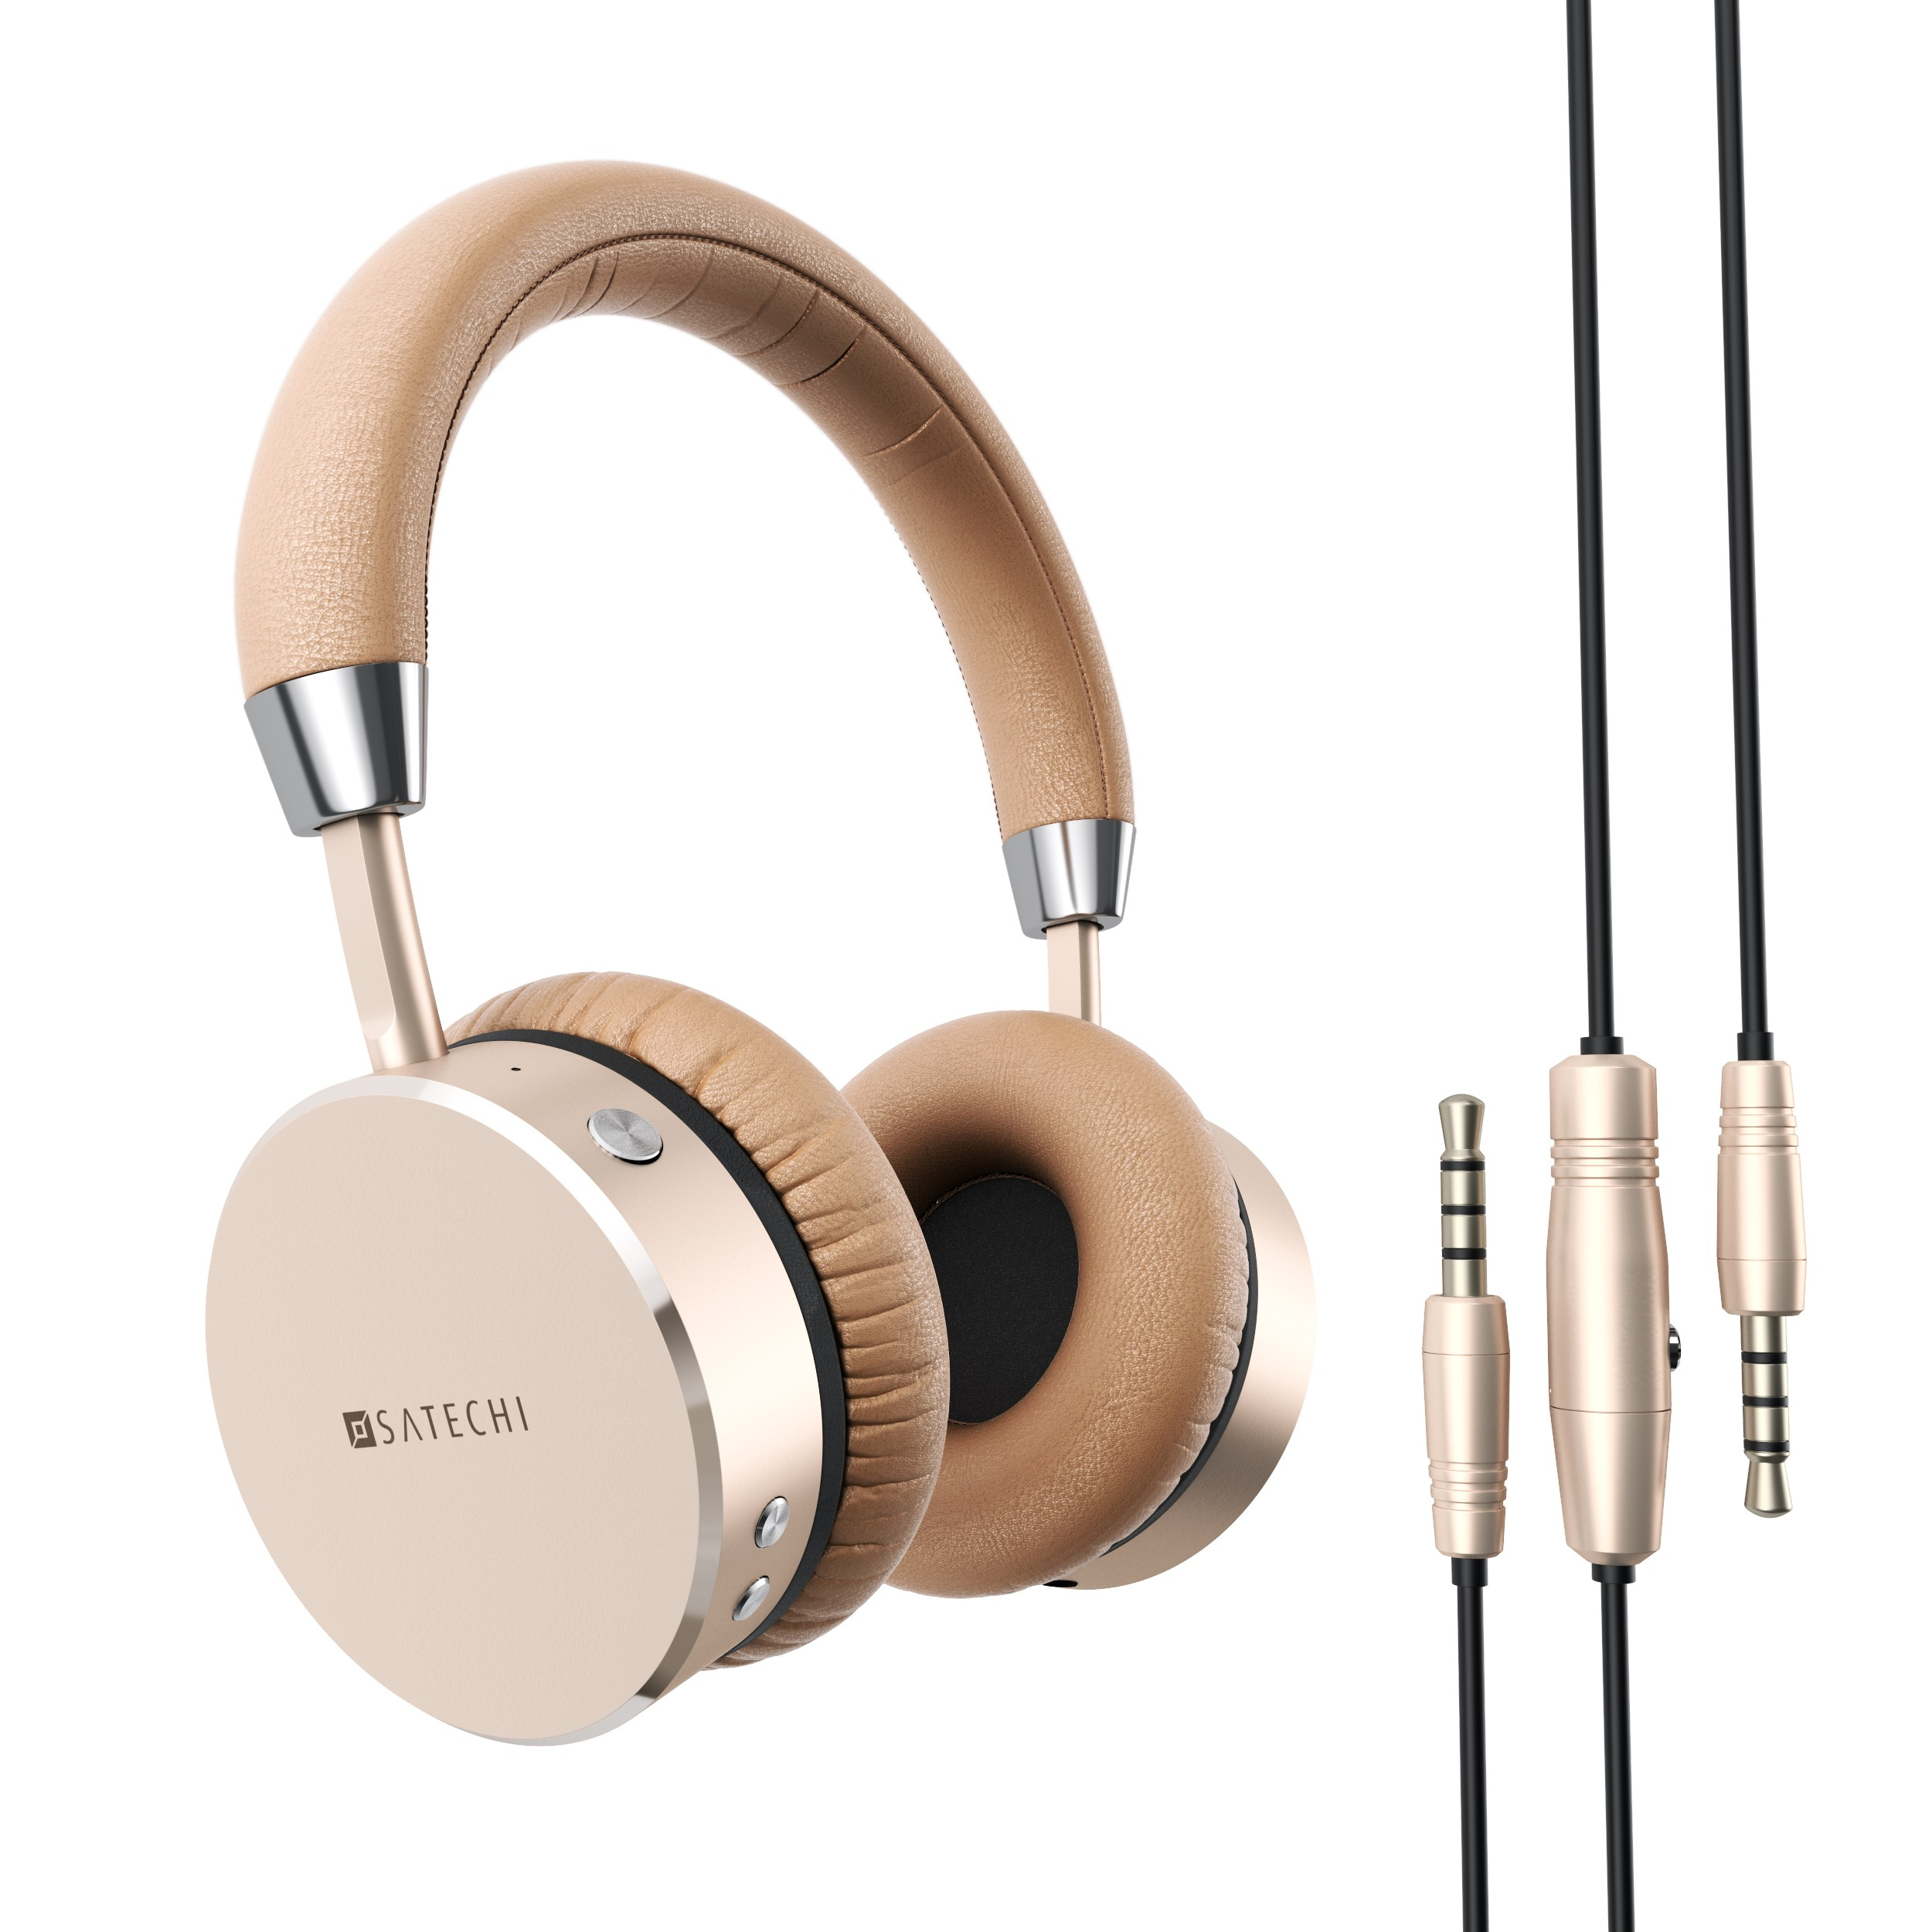 Satechi Headphones